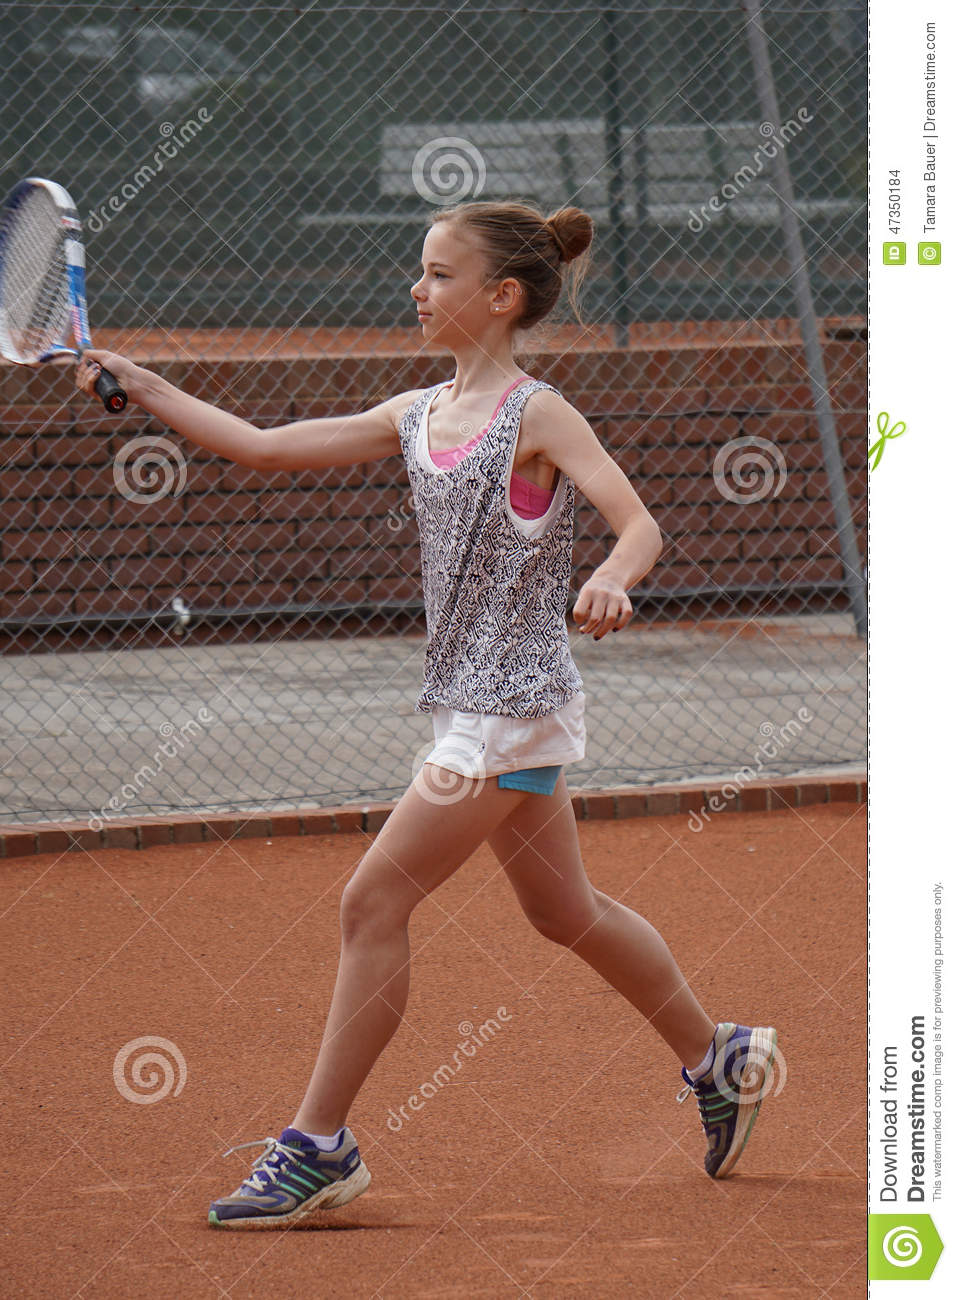 how to teach a young child tennis